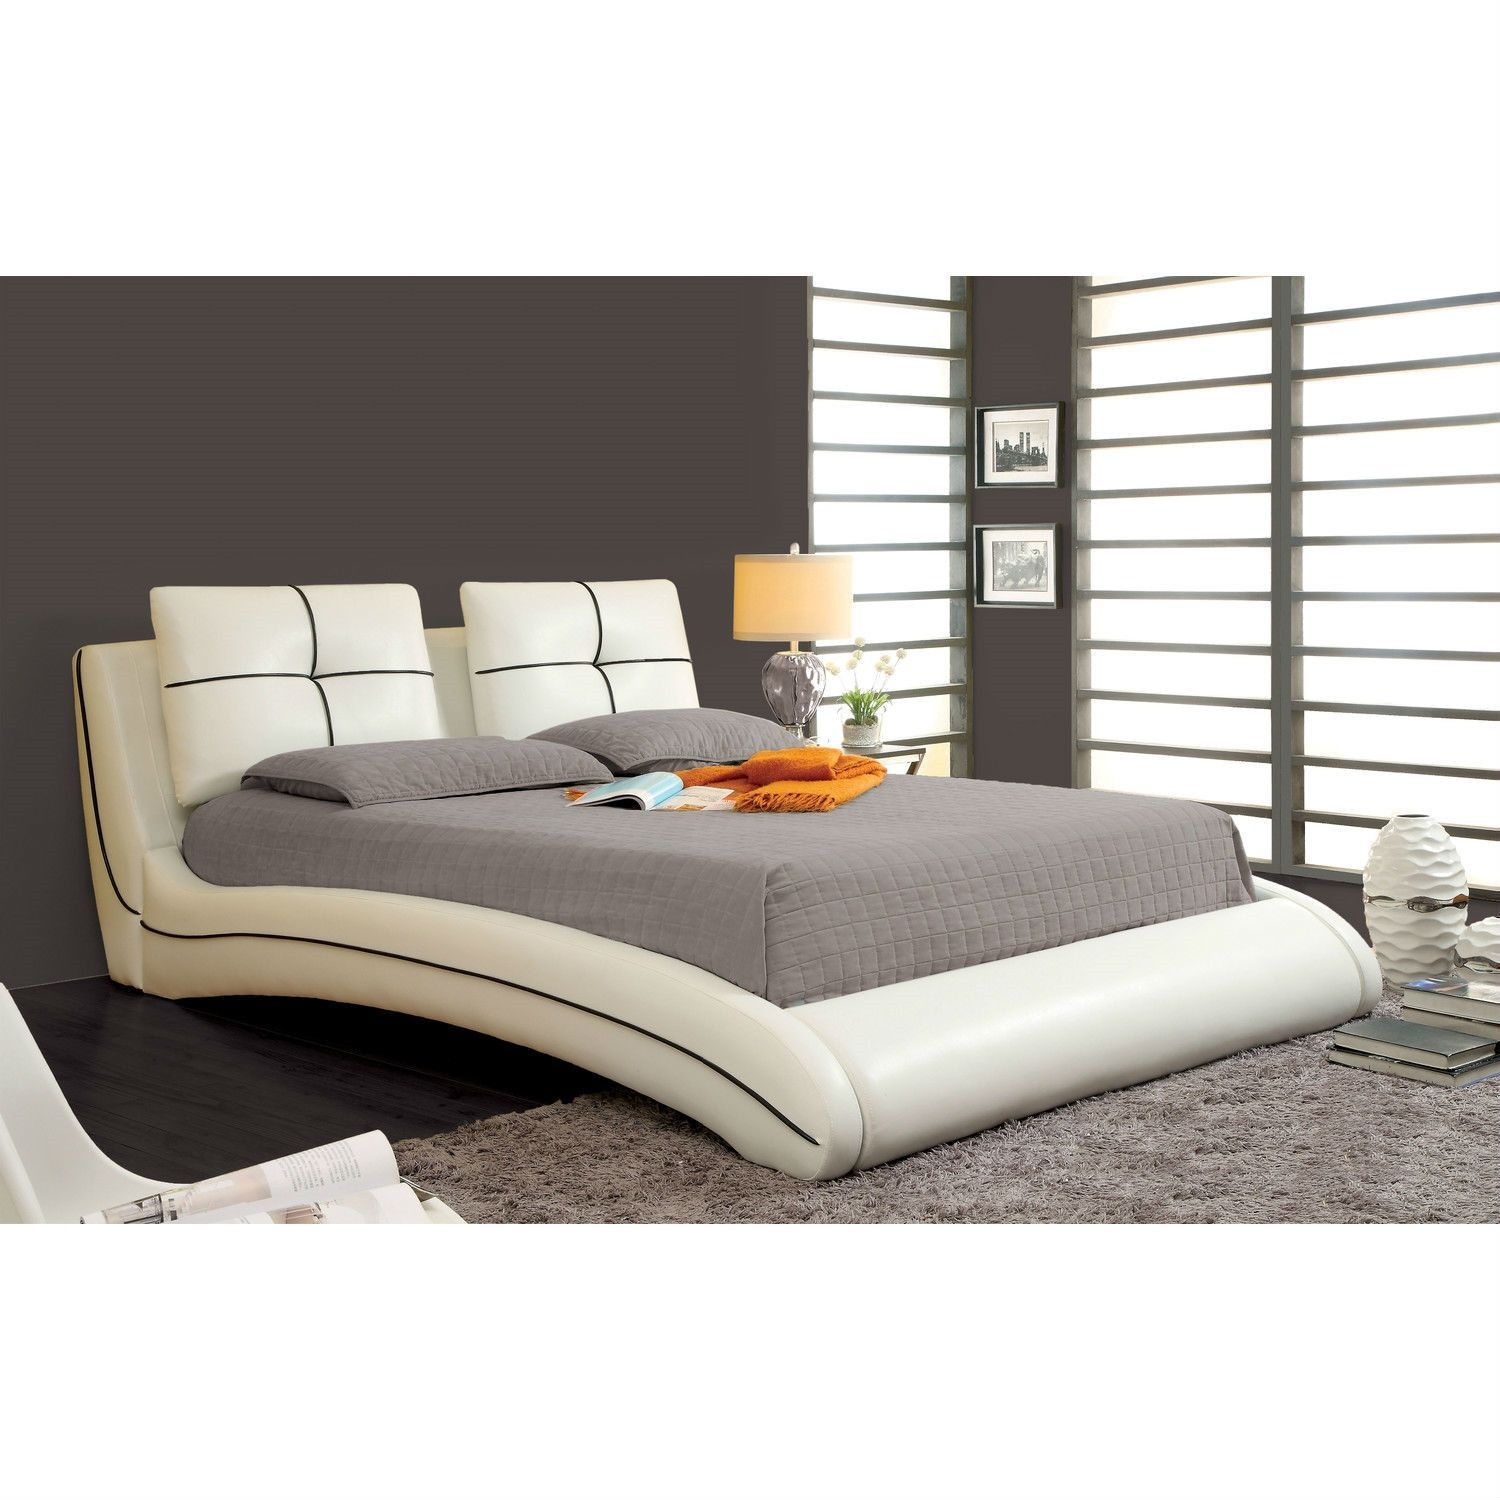 Queen Size Modern Curved Upholstered Bed With Padded Headboard In White Faux Leather California King Size Bed Leather Platform Bed Bed Frame And Headboard